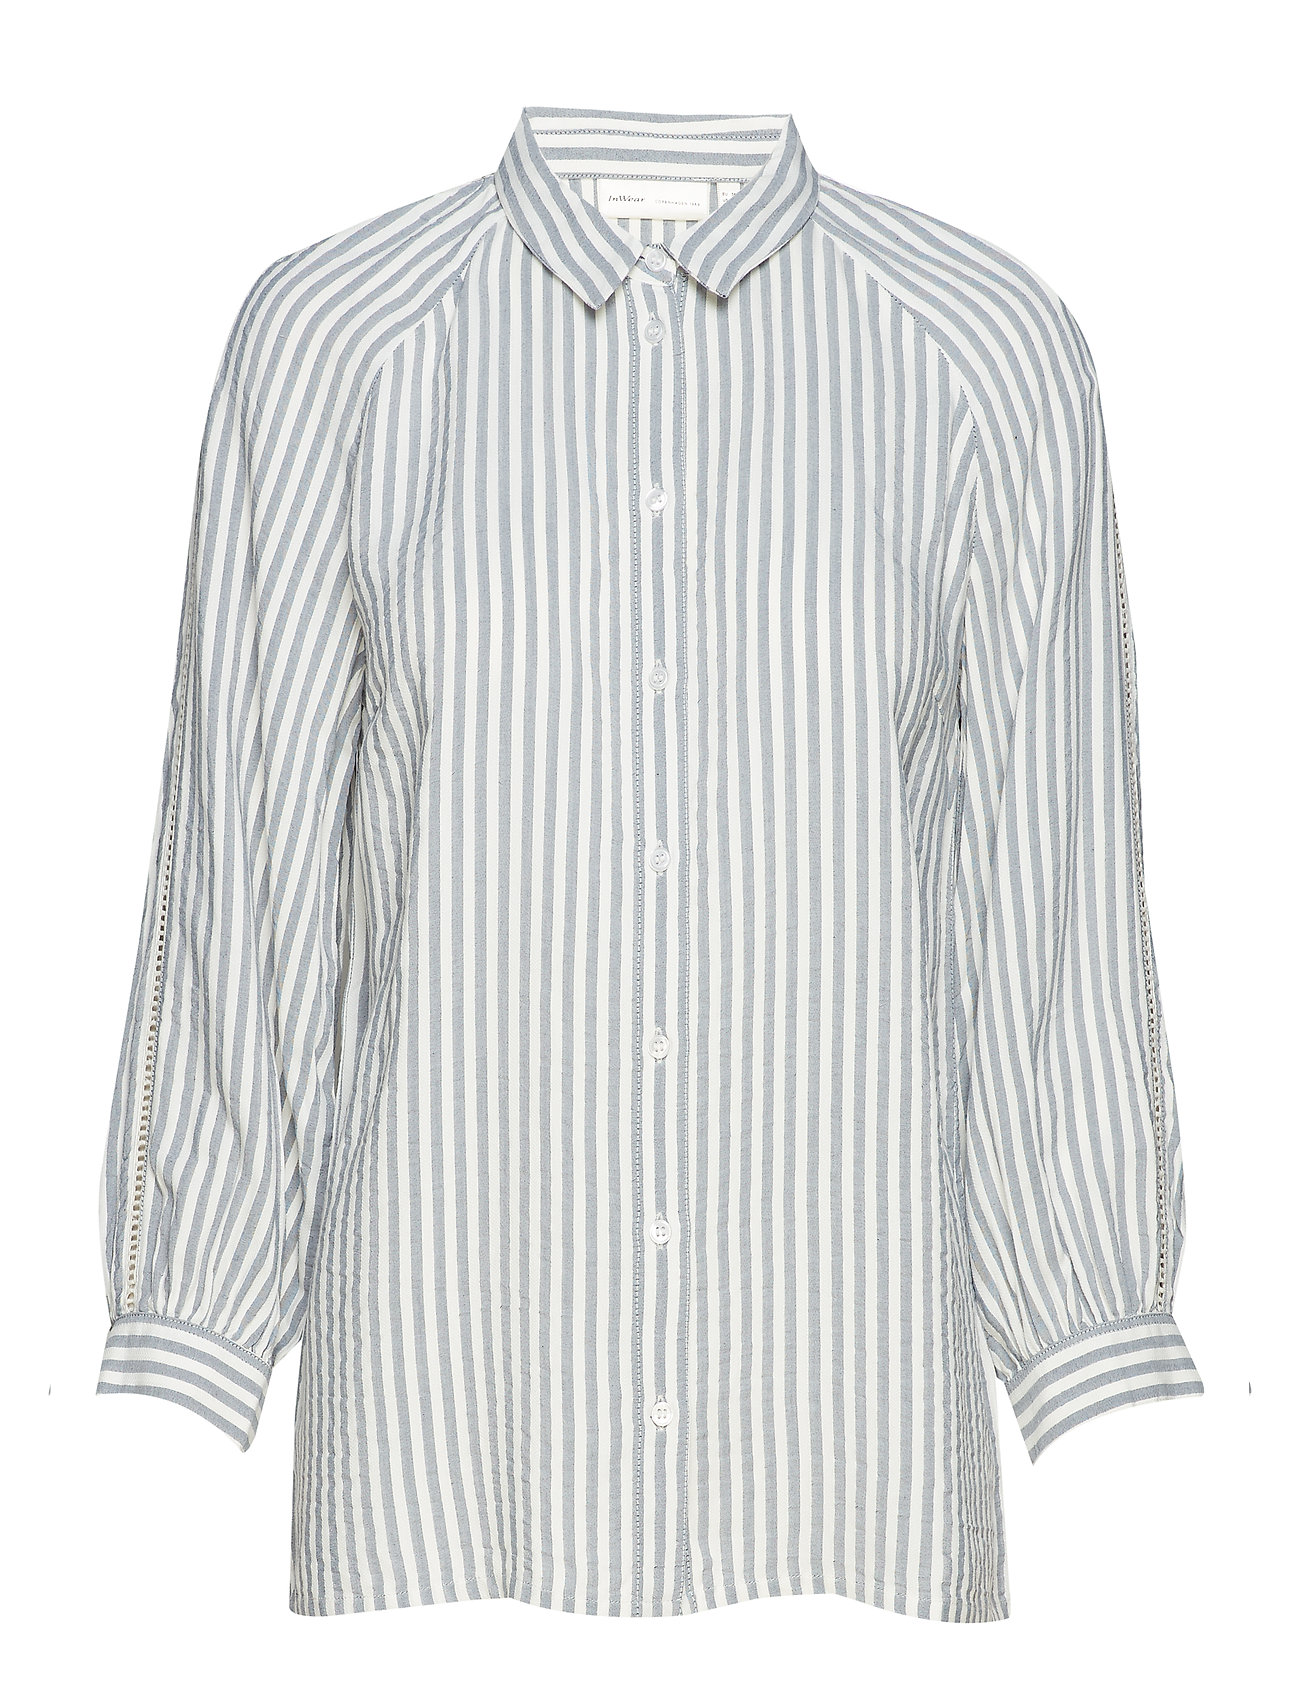 InWear Alma Striped Shirt - MARINE BLUE